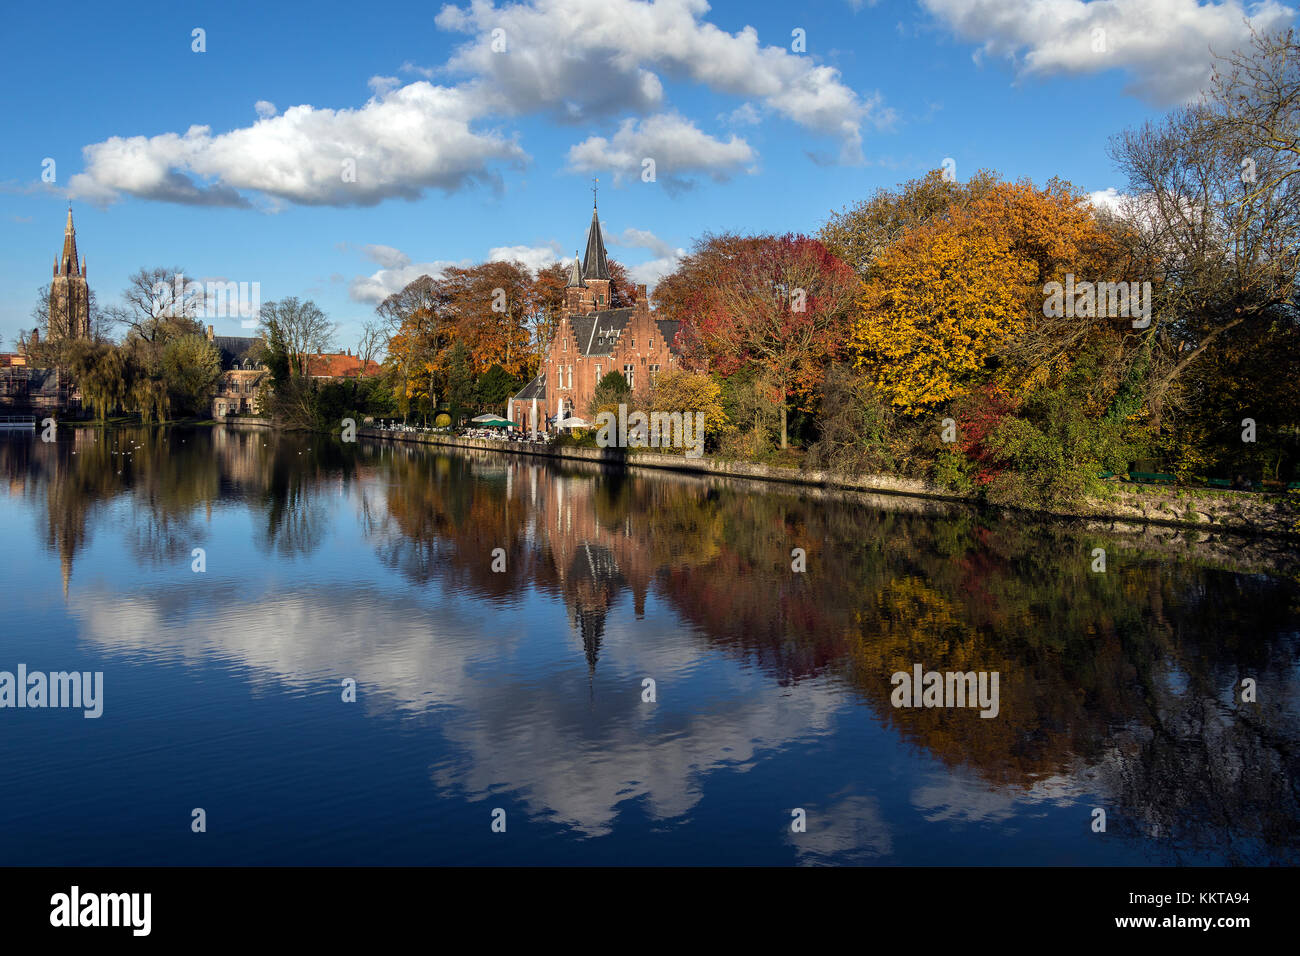 Minnewater in the city of Bruges in Belgium. - Stock Image